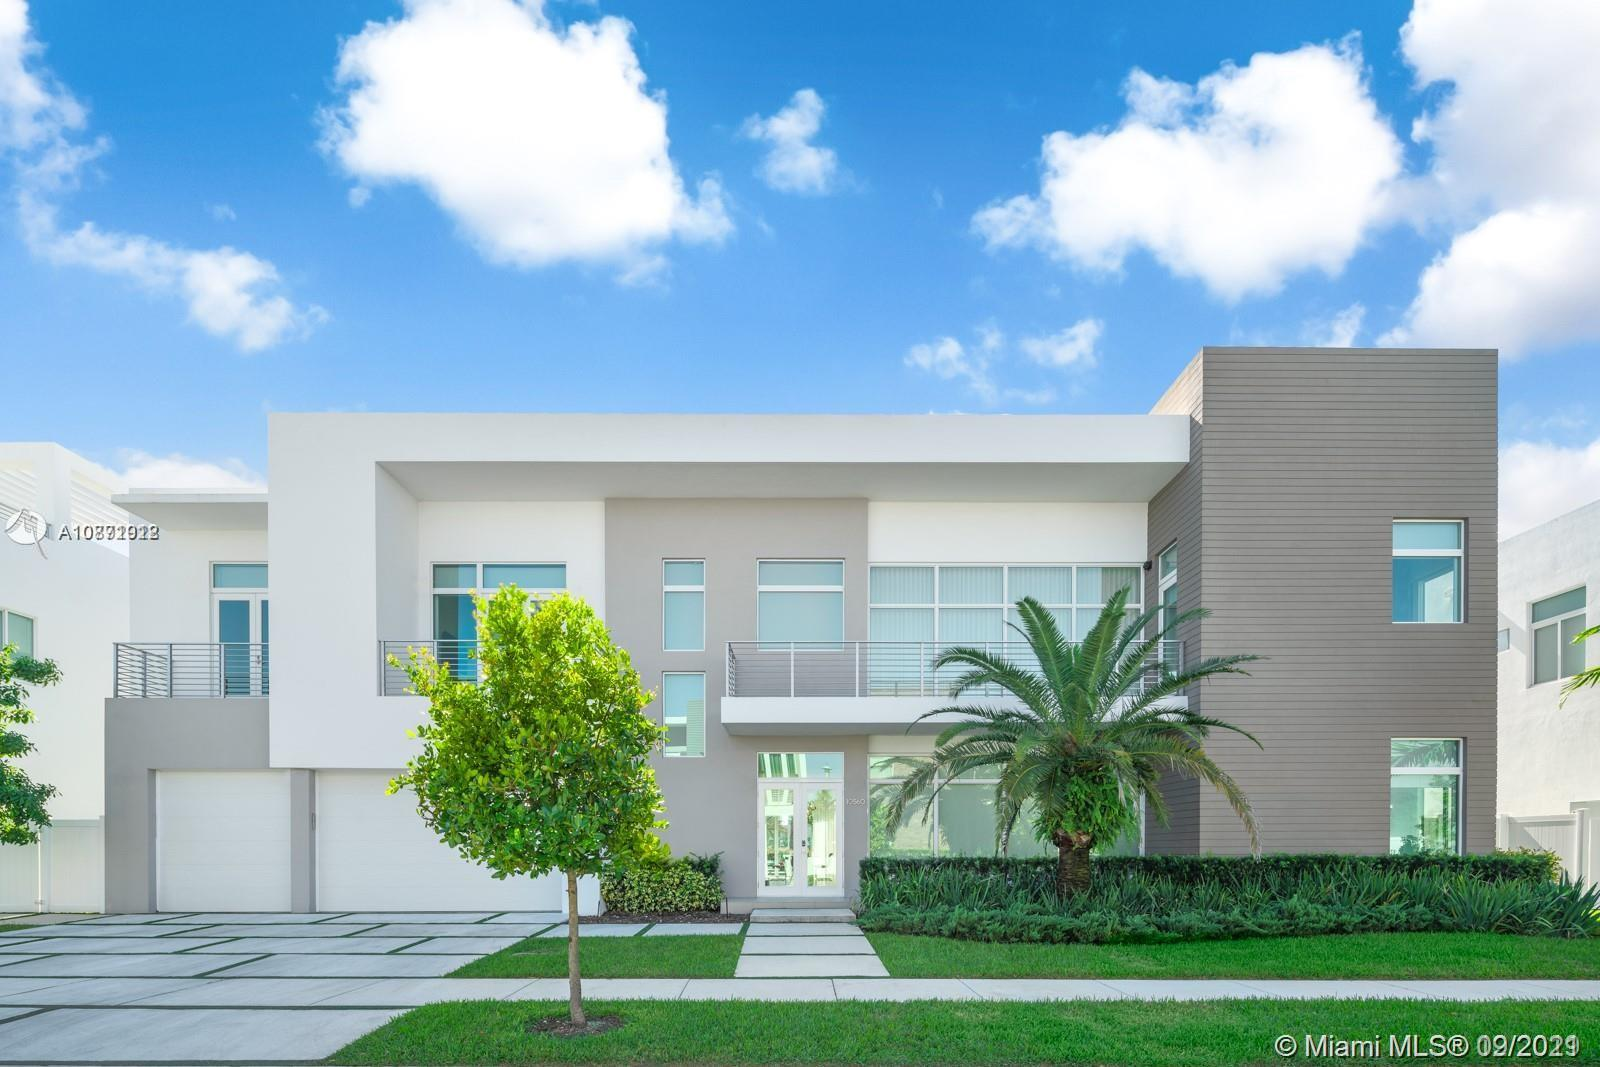 Unique opportunity to own the most stunning modern waterfront home at The Mansions At Doral. 8,560 Sf, 2 story, 6BA/6.5BR, 3CGl, on the only premium double size waterfront lot, w/ sophisticated finishes & upgrdes: double-height ceilings in living area, climate-controlled glass wine cellar, glass railings staircases, outdoors w/2 summer kitchens & 2nd floor 300 SF terrace w/panoramic views. 100% smart home: All lighting, speakers, shades, TVs, 13 surveillance cameras, & AC can be smartphone-controlled. Custom extended Italian kitchen w/Subzero/Wolf appliances. Master, w/balcony offers oversized glass shower/tub & boutique-style walk-in closet. Secondary BR suites w/walk-in closets. All Impact wndws.